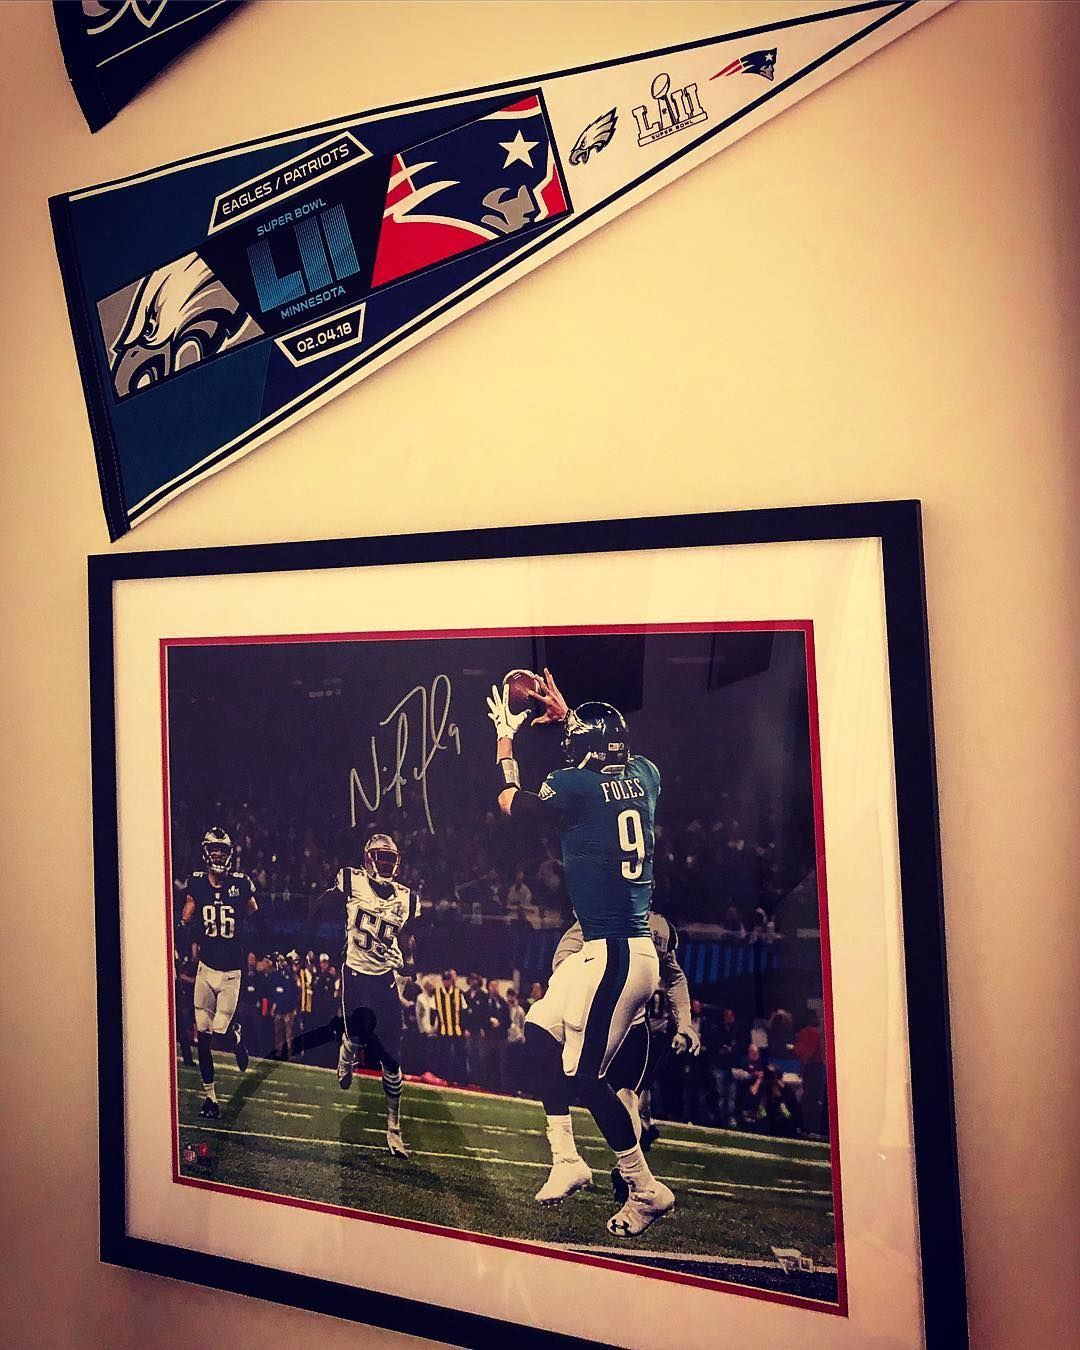 Signed Nick Foles Philly Special photograph #philadelphiaeagles ...